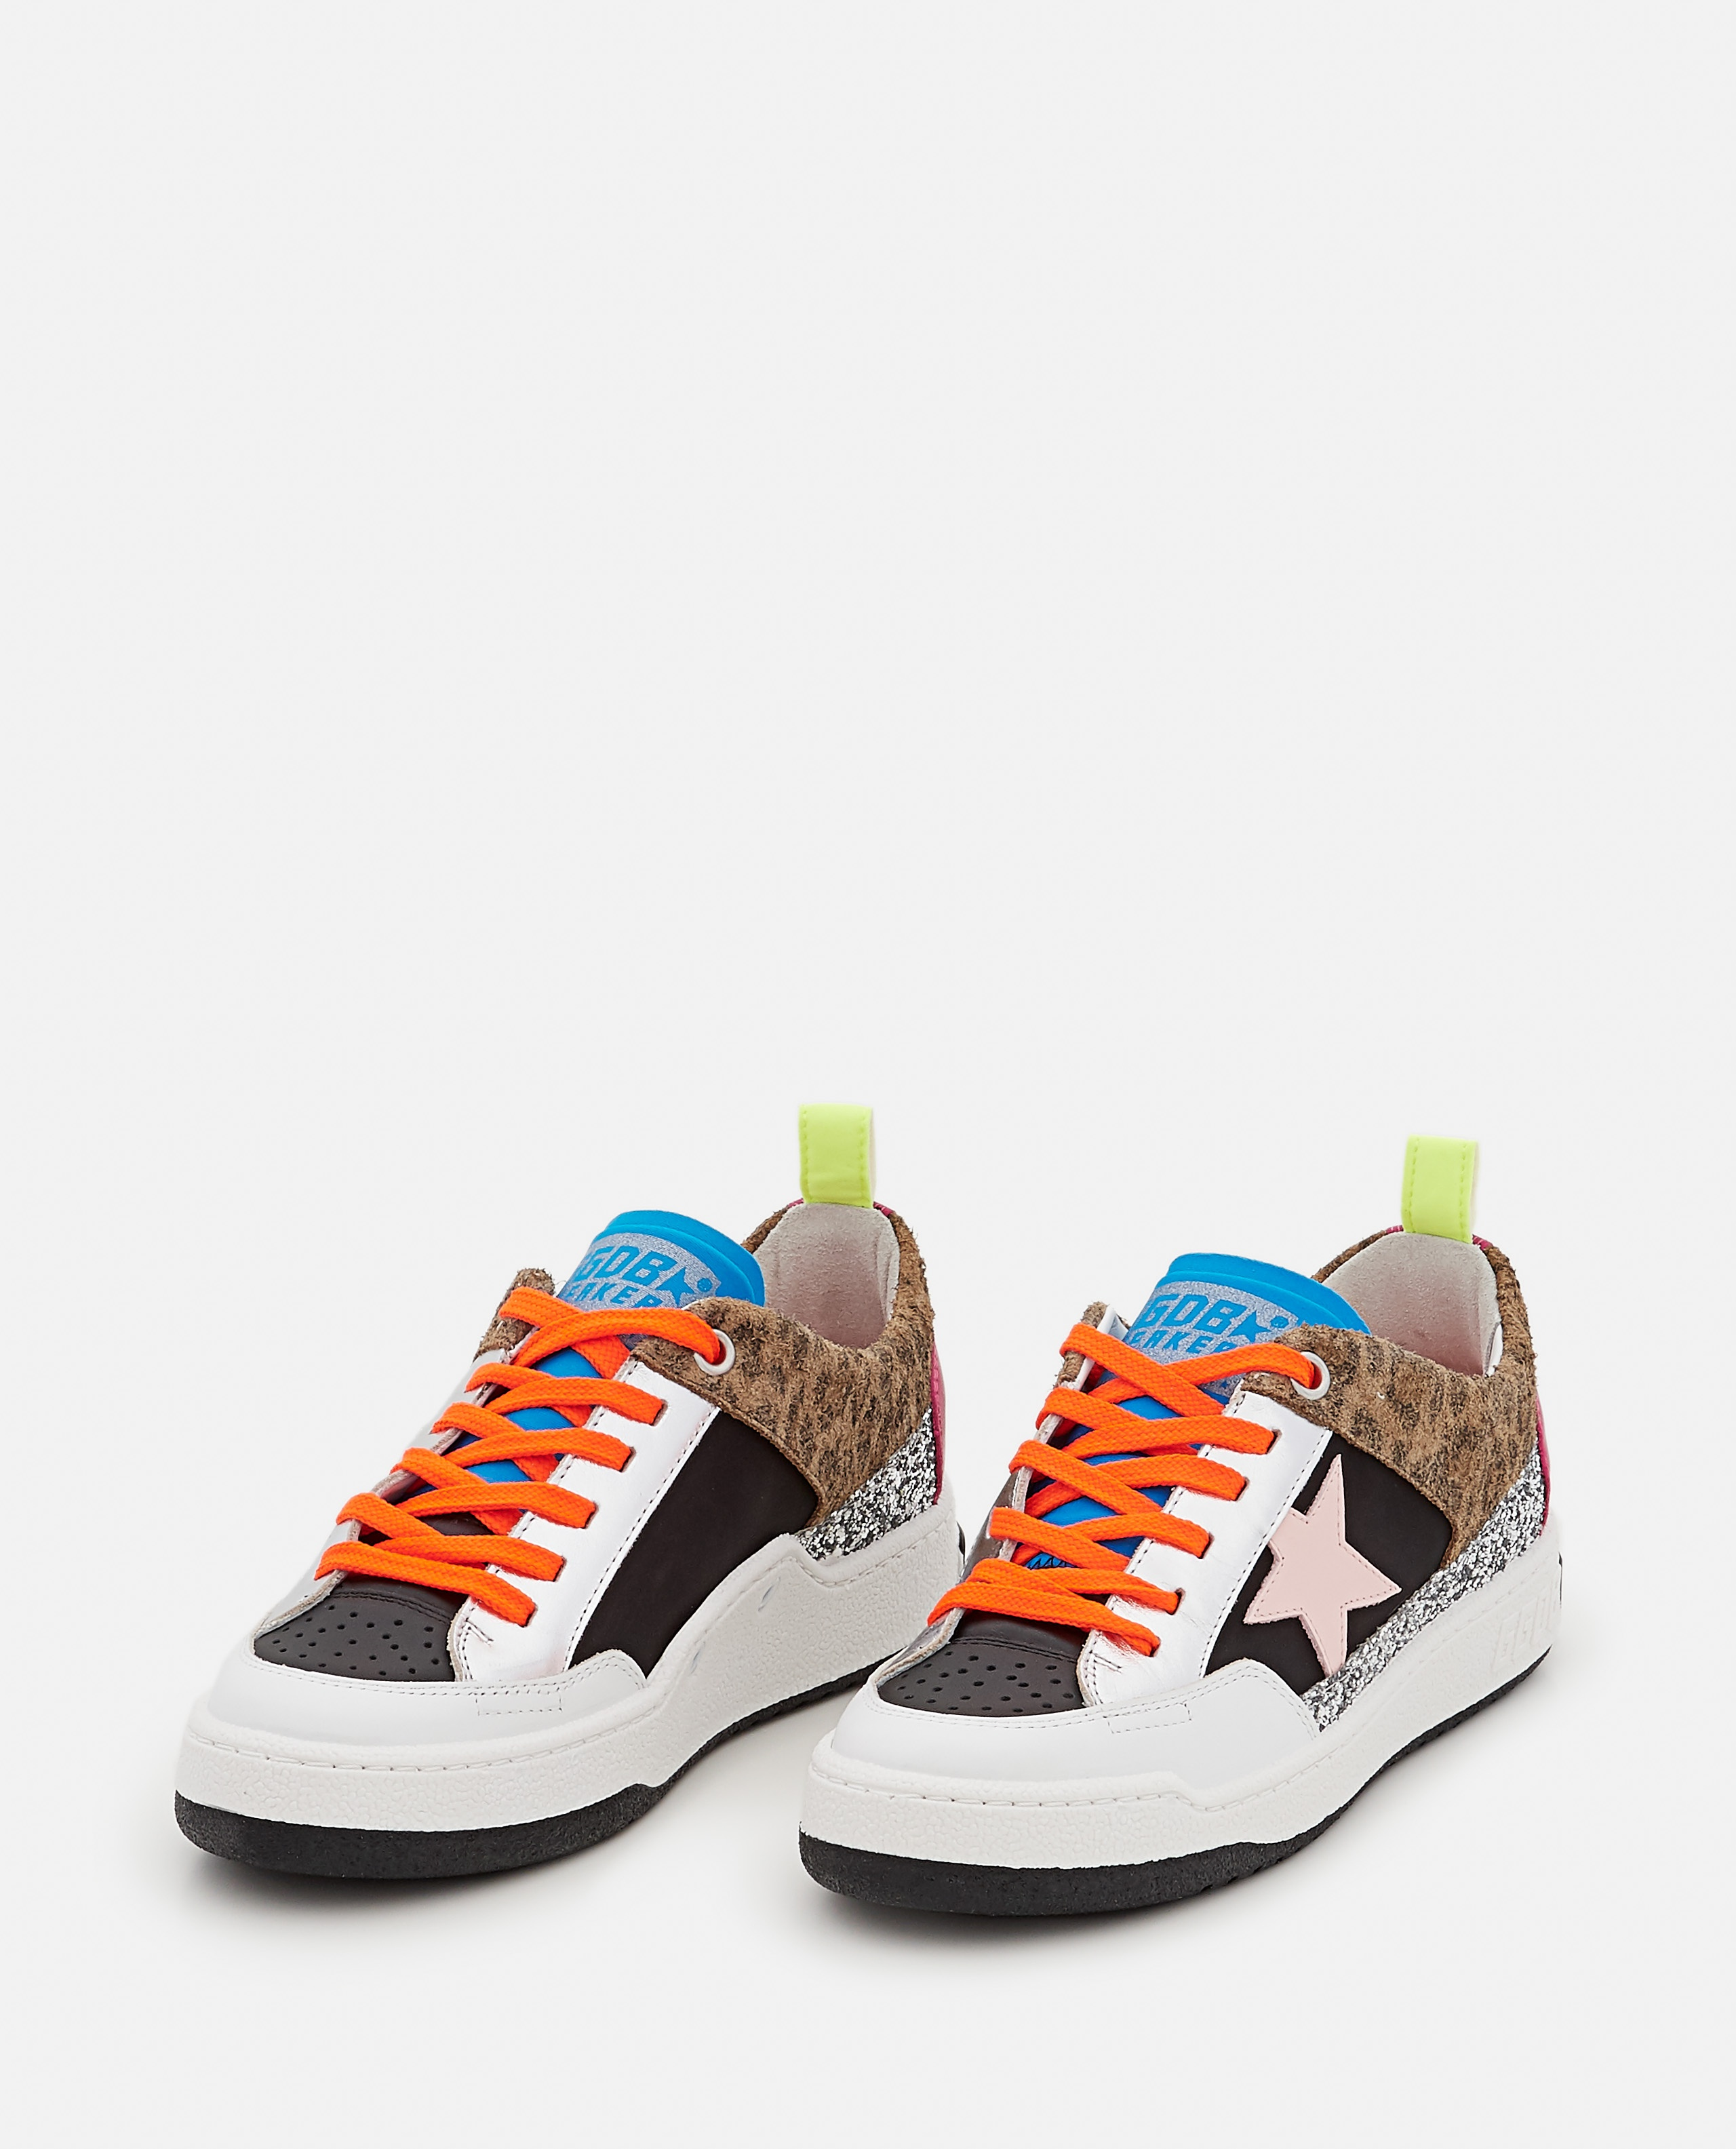 YEAH NYLON AND LEATHER SNEAKERS  Women Golden Goose 000322380047133 2